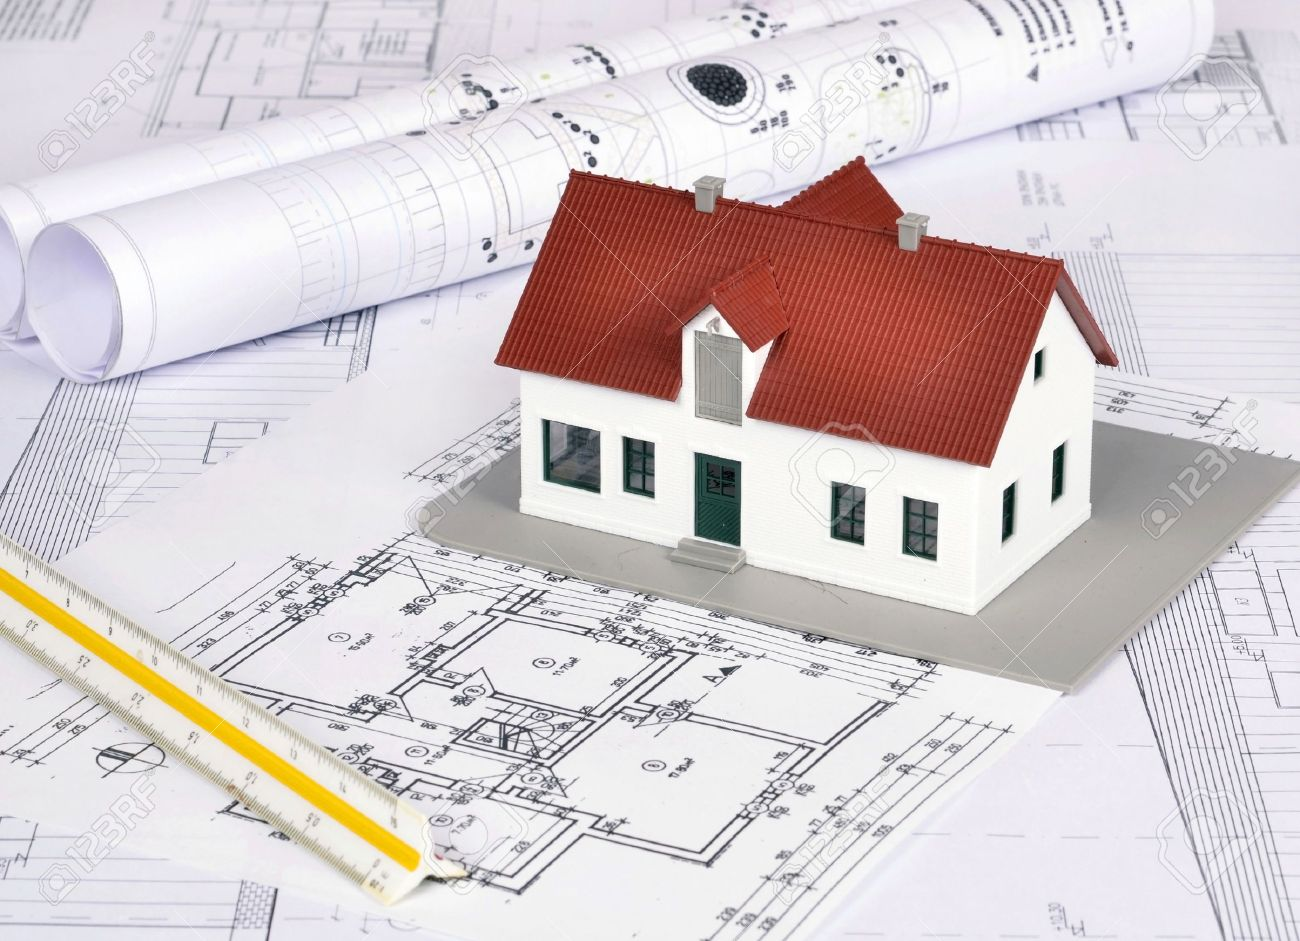 model house on a construction plan for house building stock photo model house on a construction plan for house building stock photo 20139161